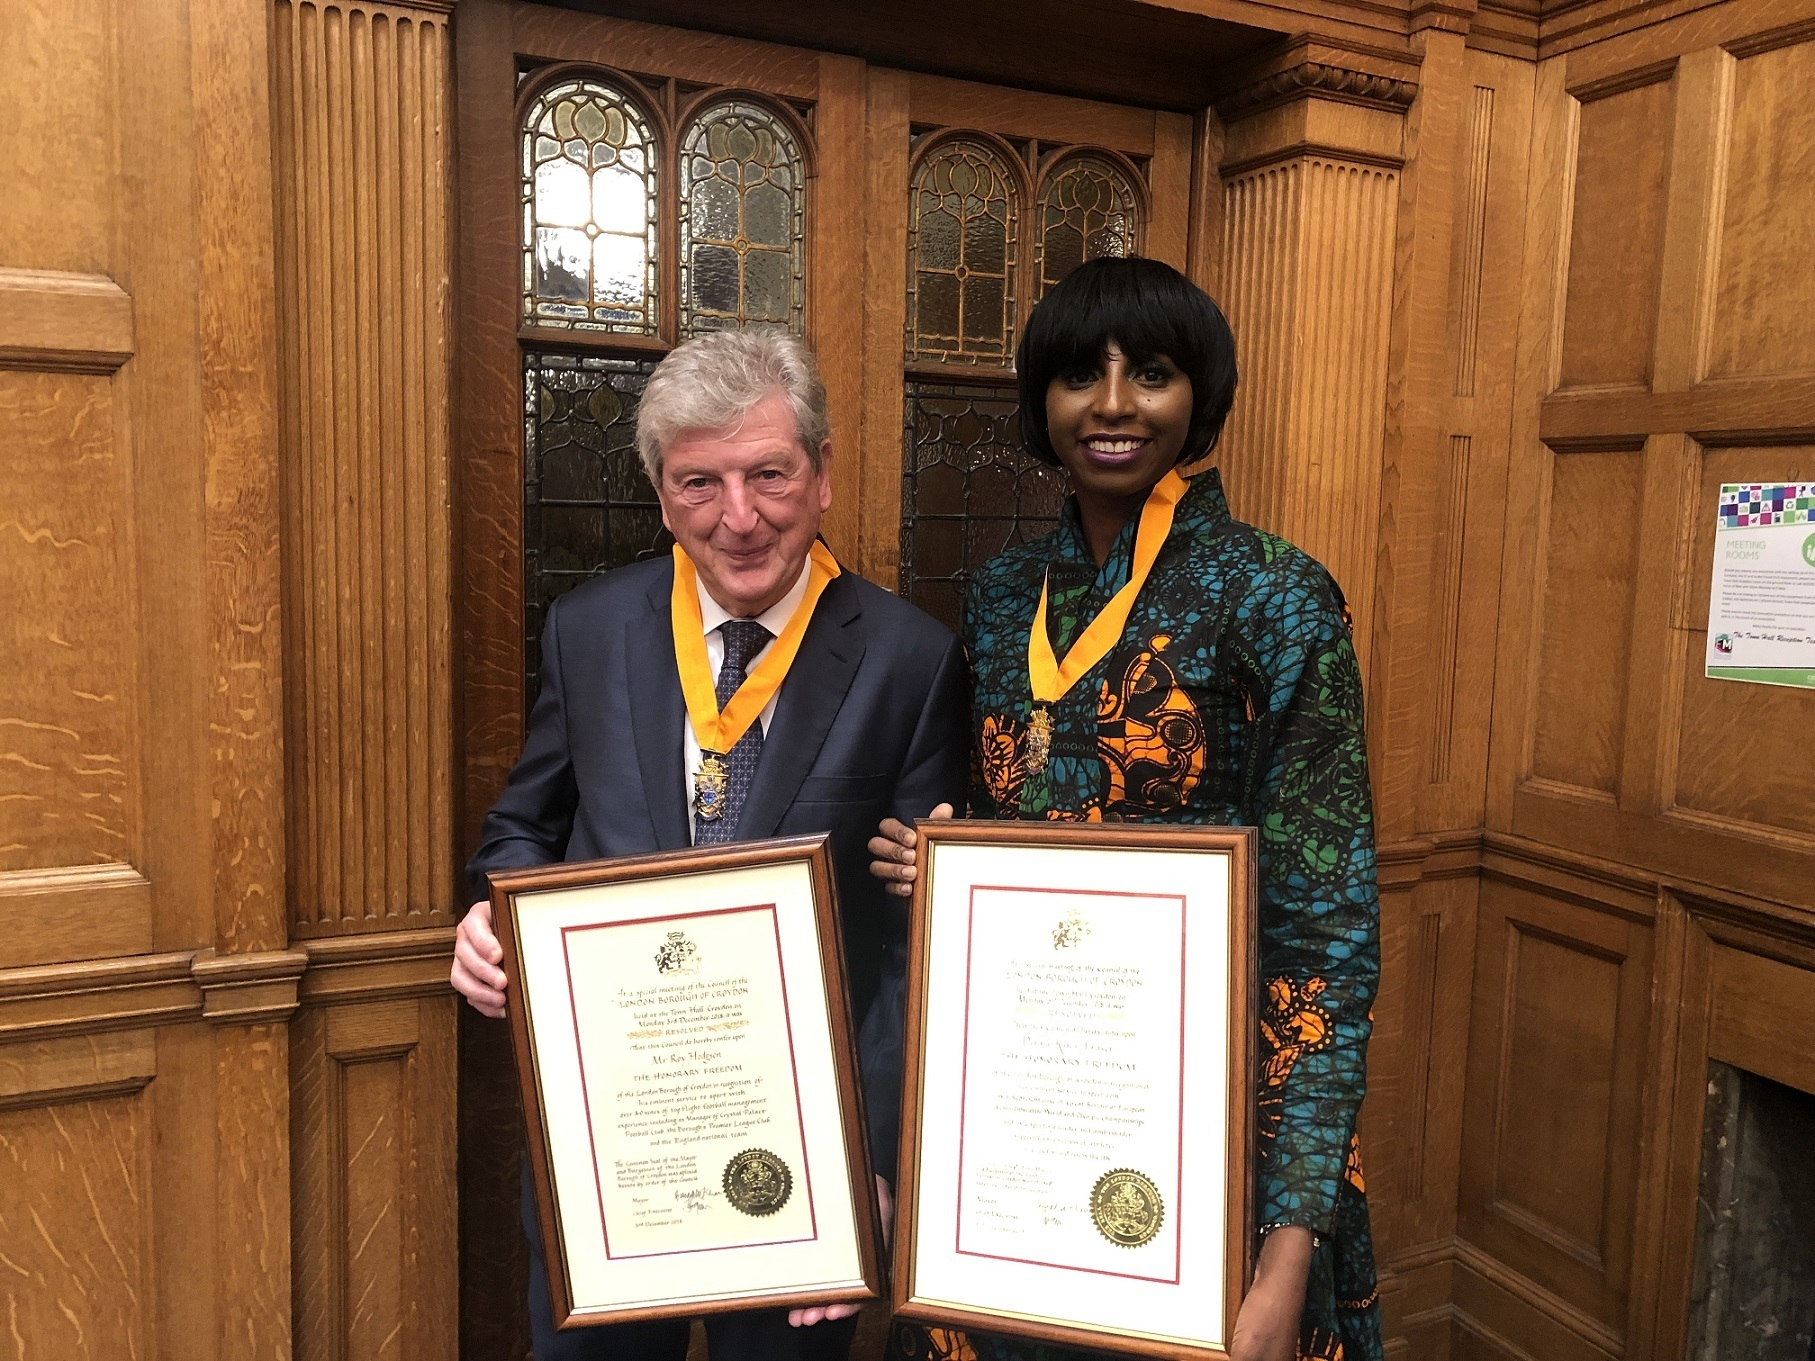 Roy Hodgson and Donna Fraser awarded freedom of the borough by Croydon Council on Monday, December 3.